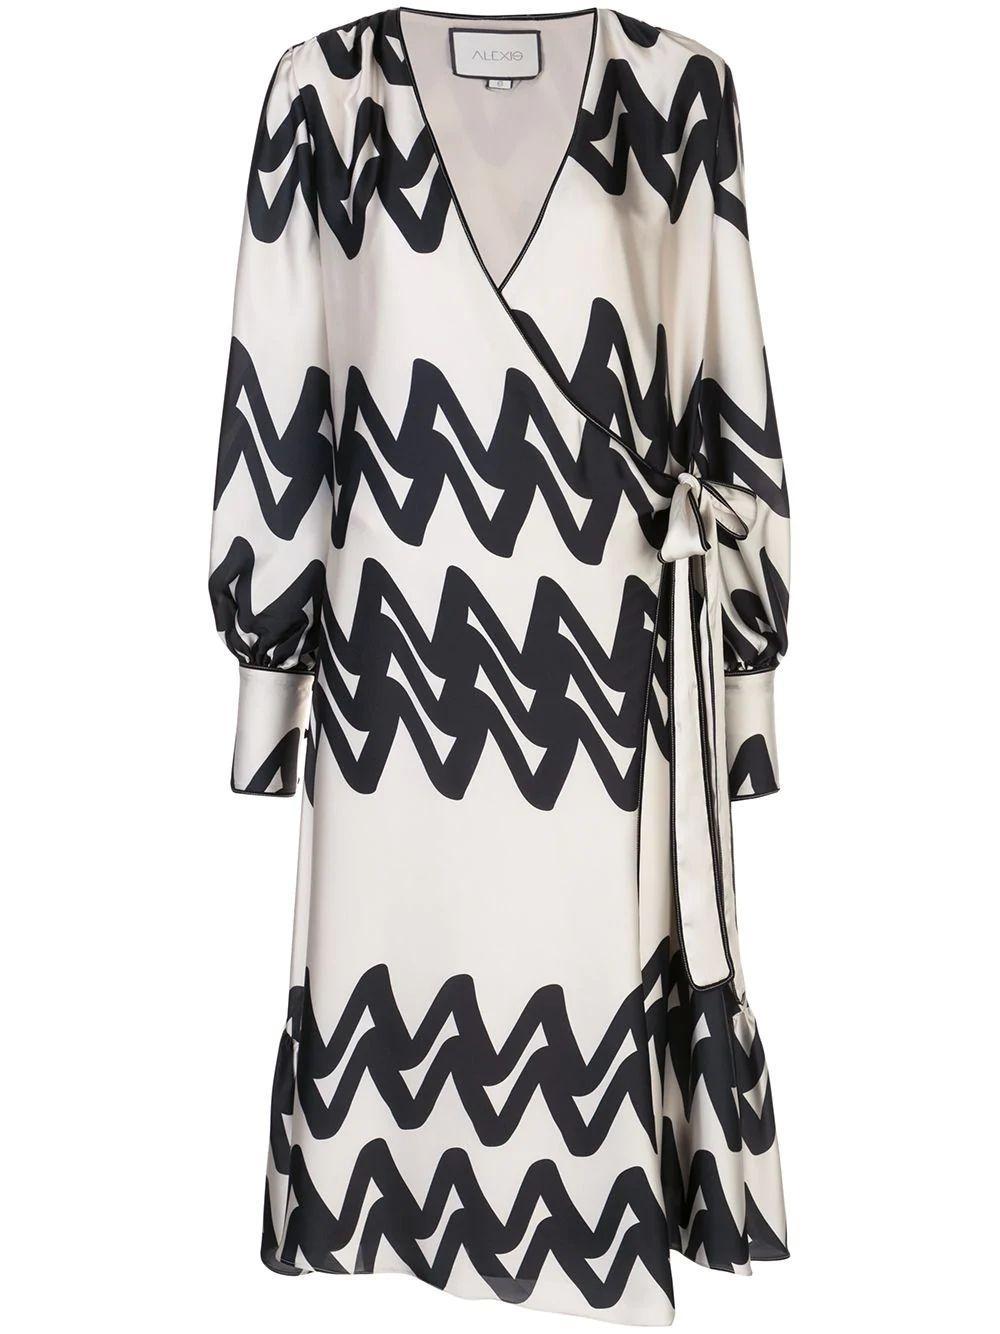 Maleko Zig Zag Print Wrap Dress